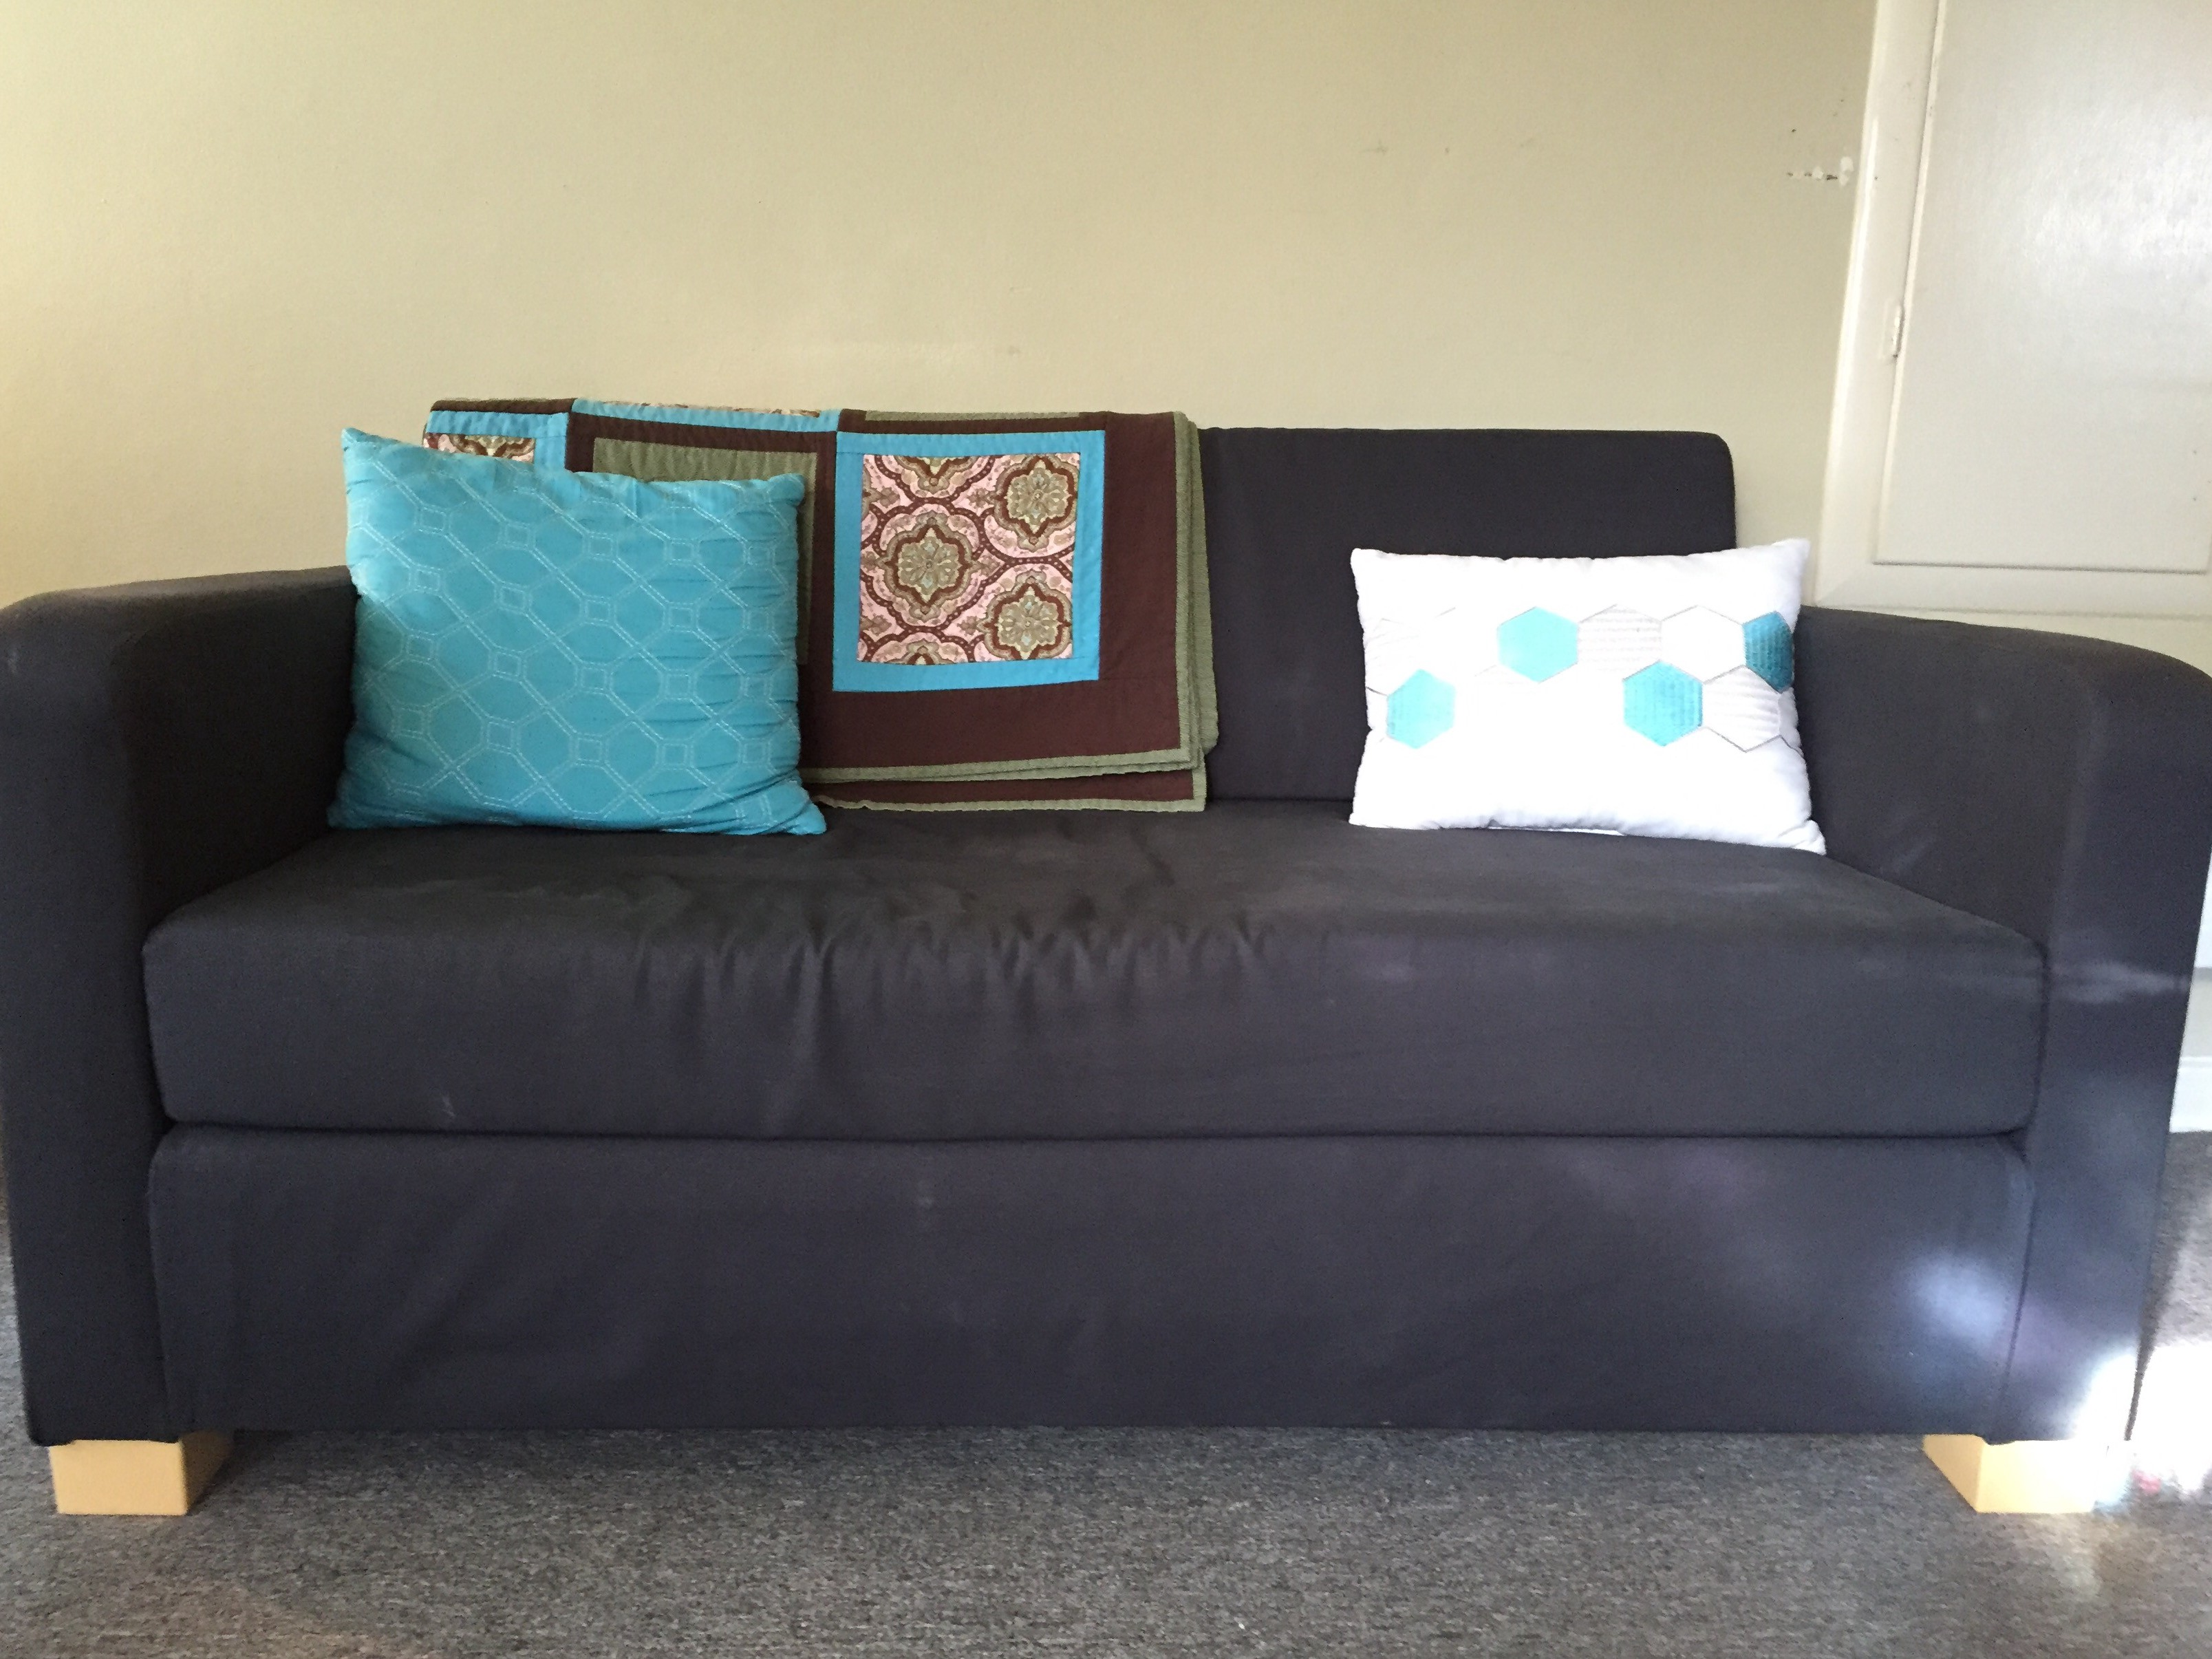 - One Year With Ikea's Second-Cheapest Sleeper Sofa By Nicole